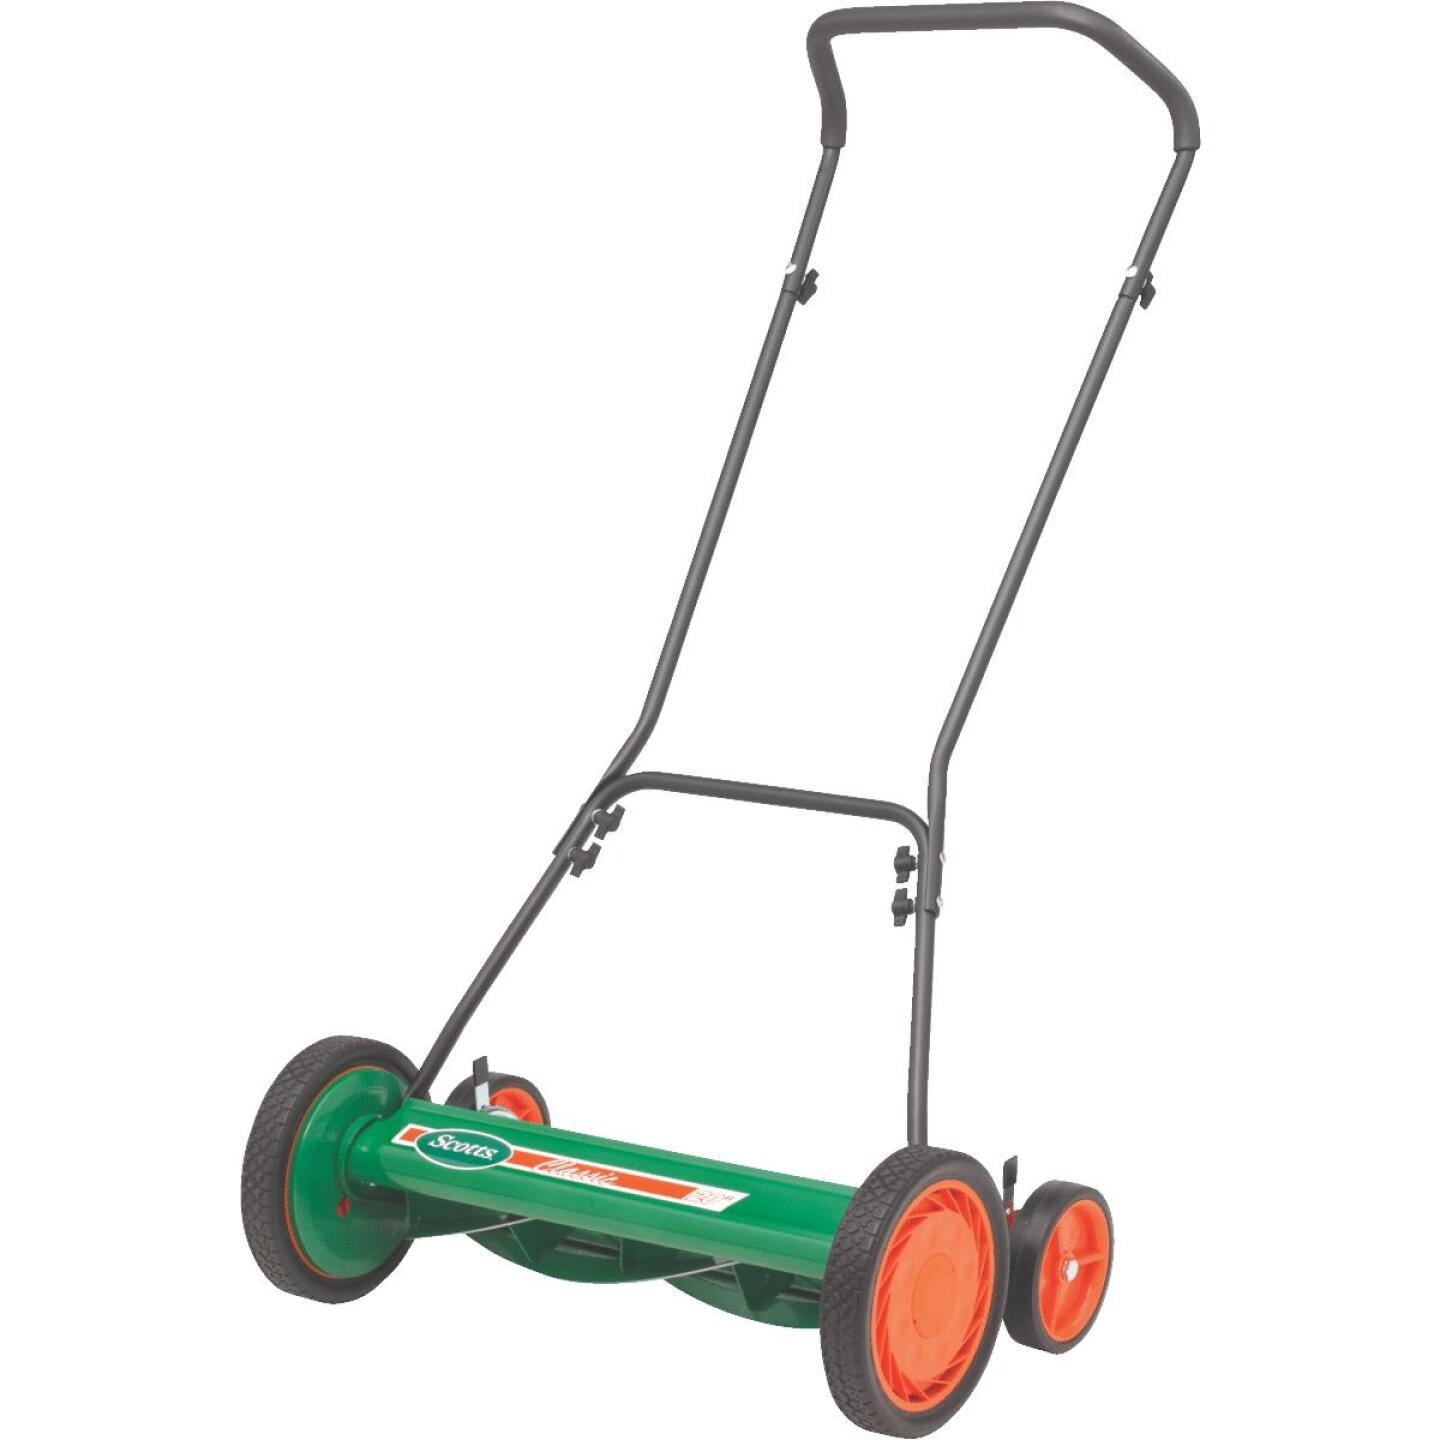 Scotts Classic 20 In. Push Reel Lawn Mower Image 1